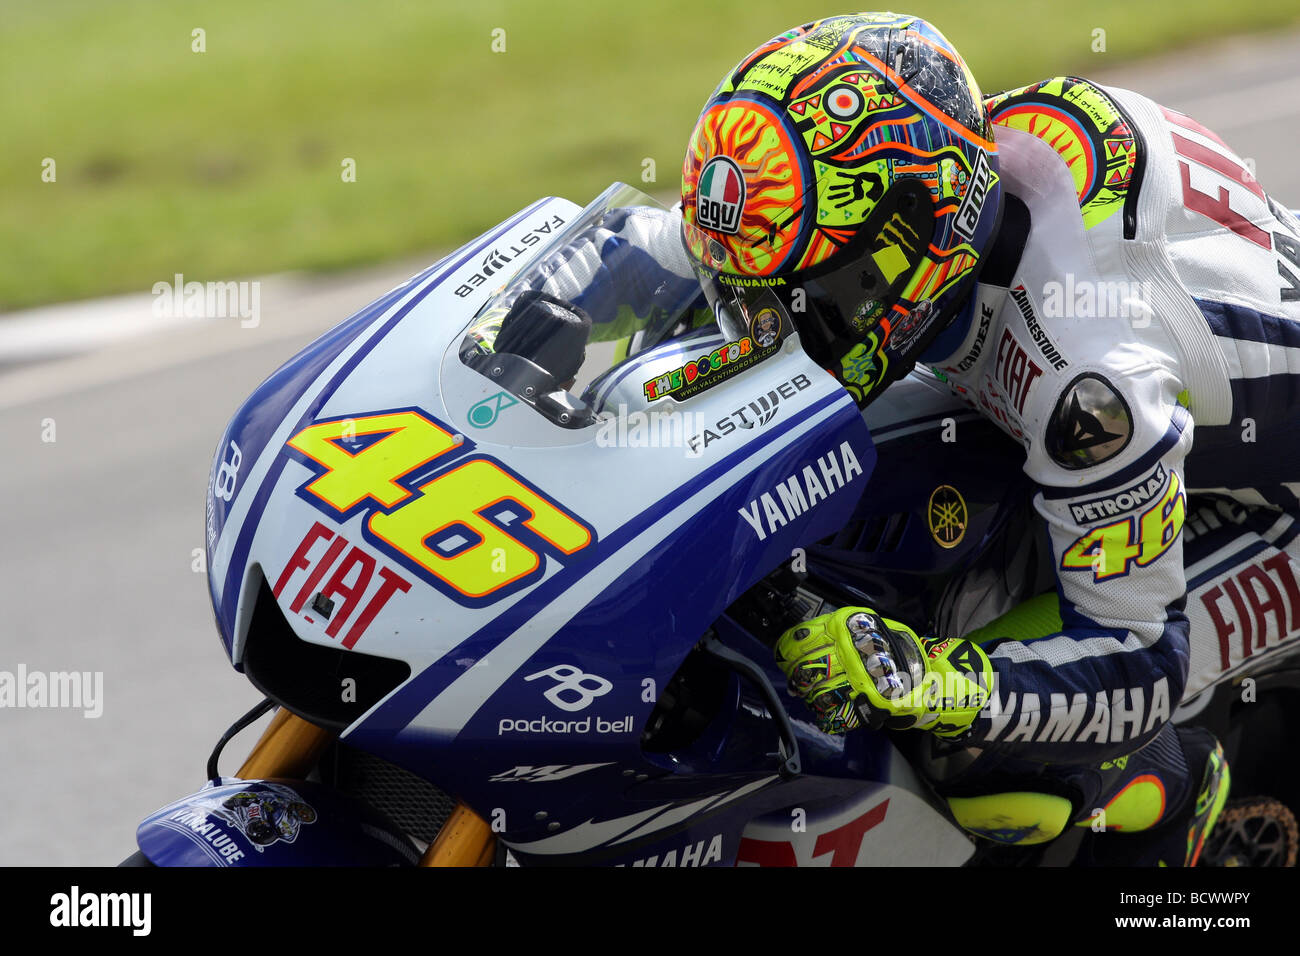 valentino rossi 46 the doctor on his yamaha m1 motogp machine Stock Photo, Royalty Free Image ...